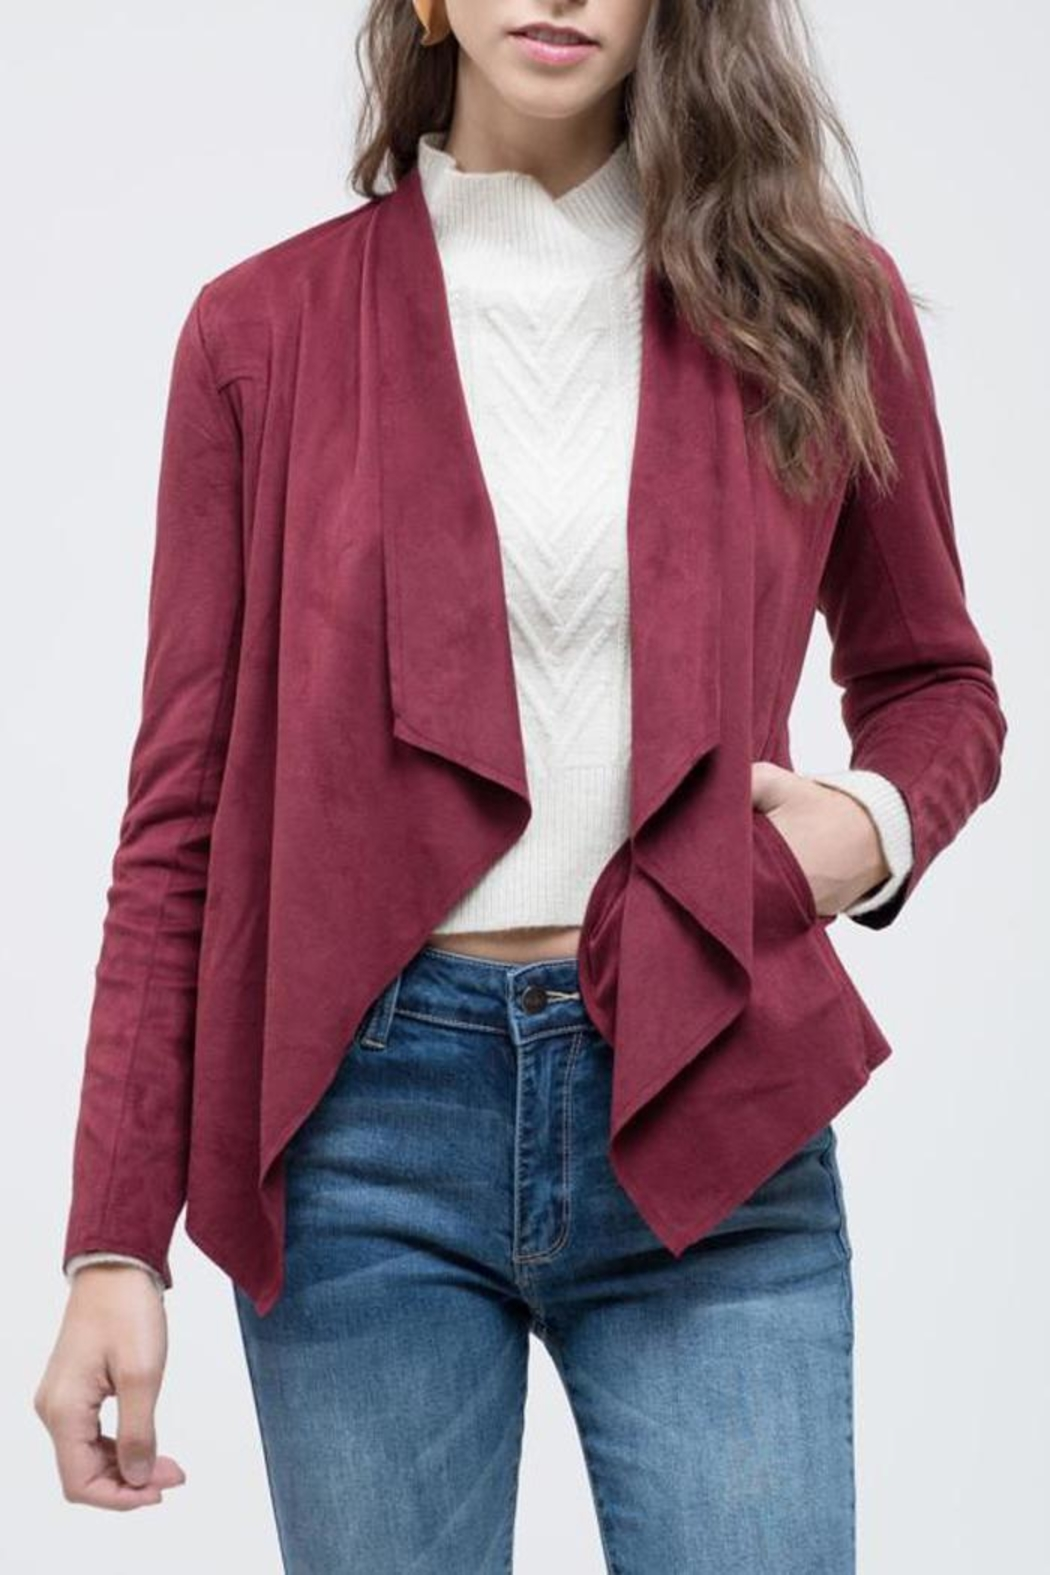 Blu Pepper Like Red-Wine Jacket - Front Cropped Image